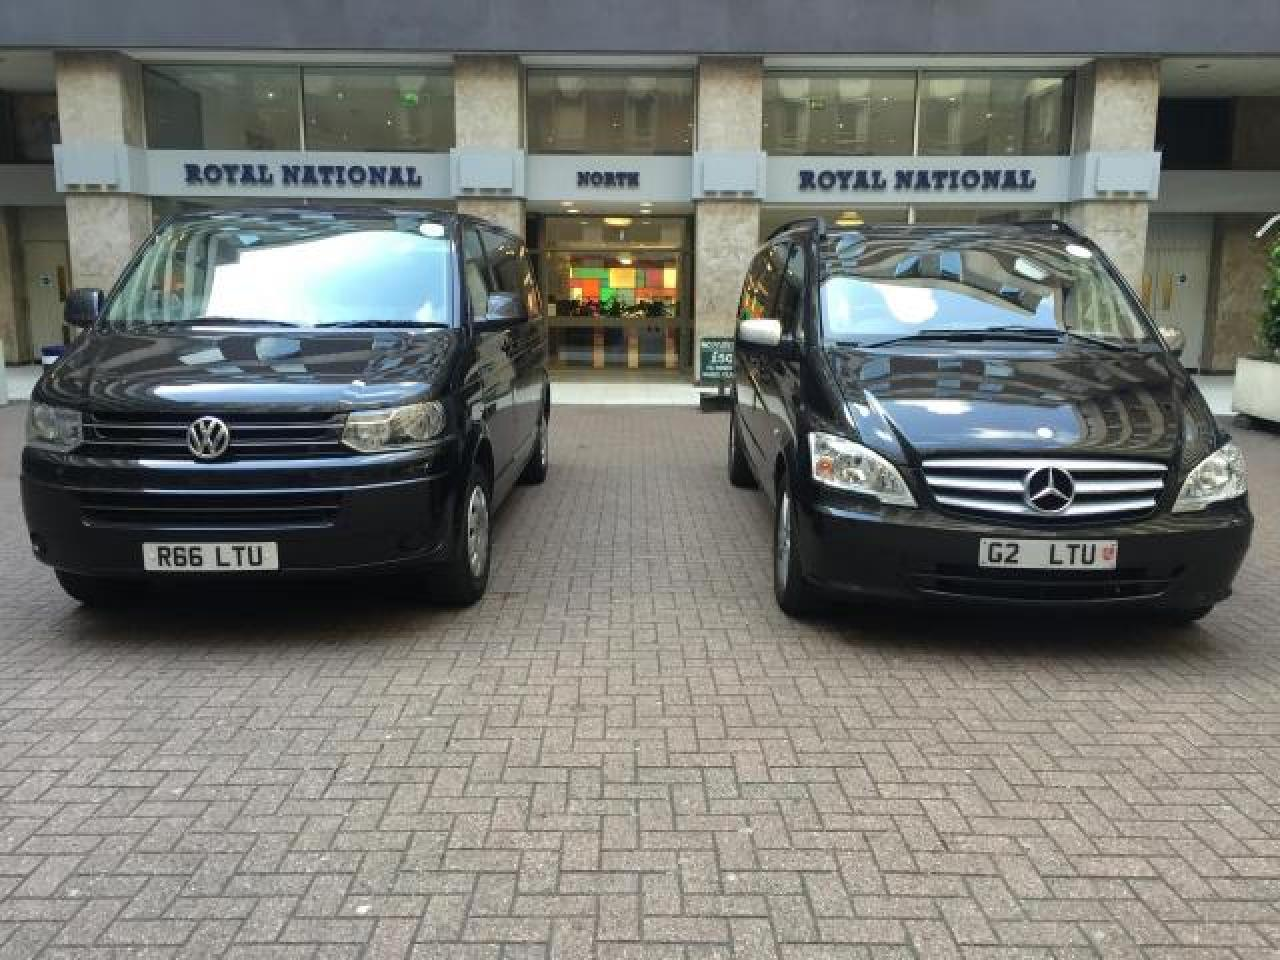 London airport  taxi 24/7 - 2